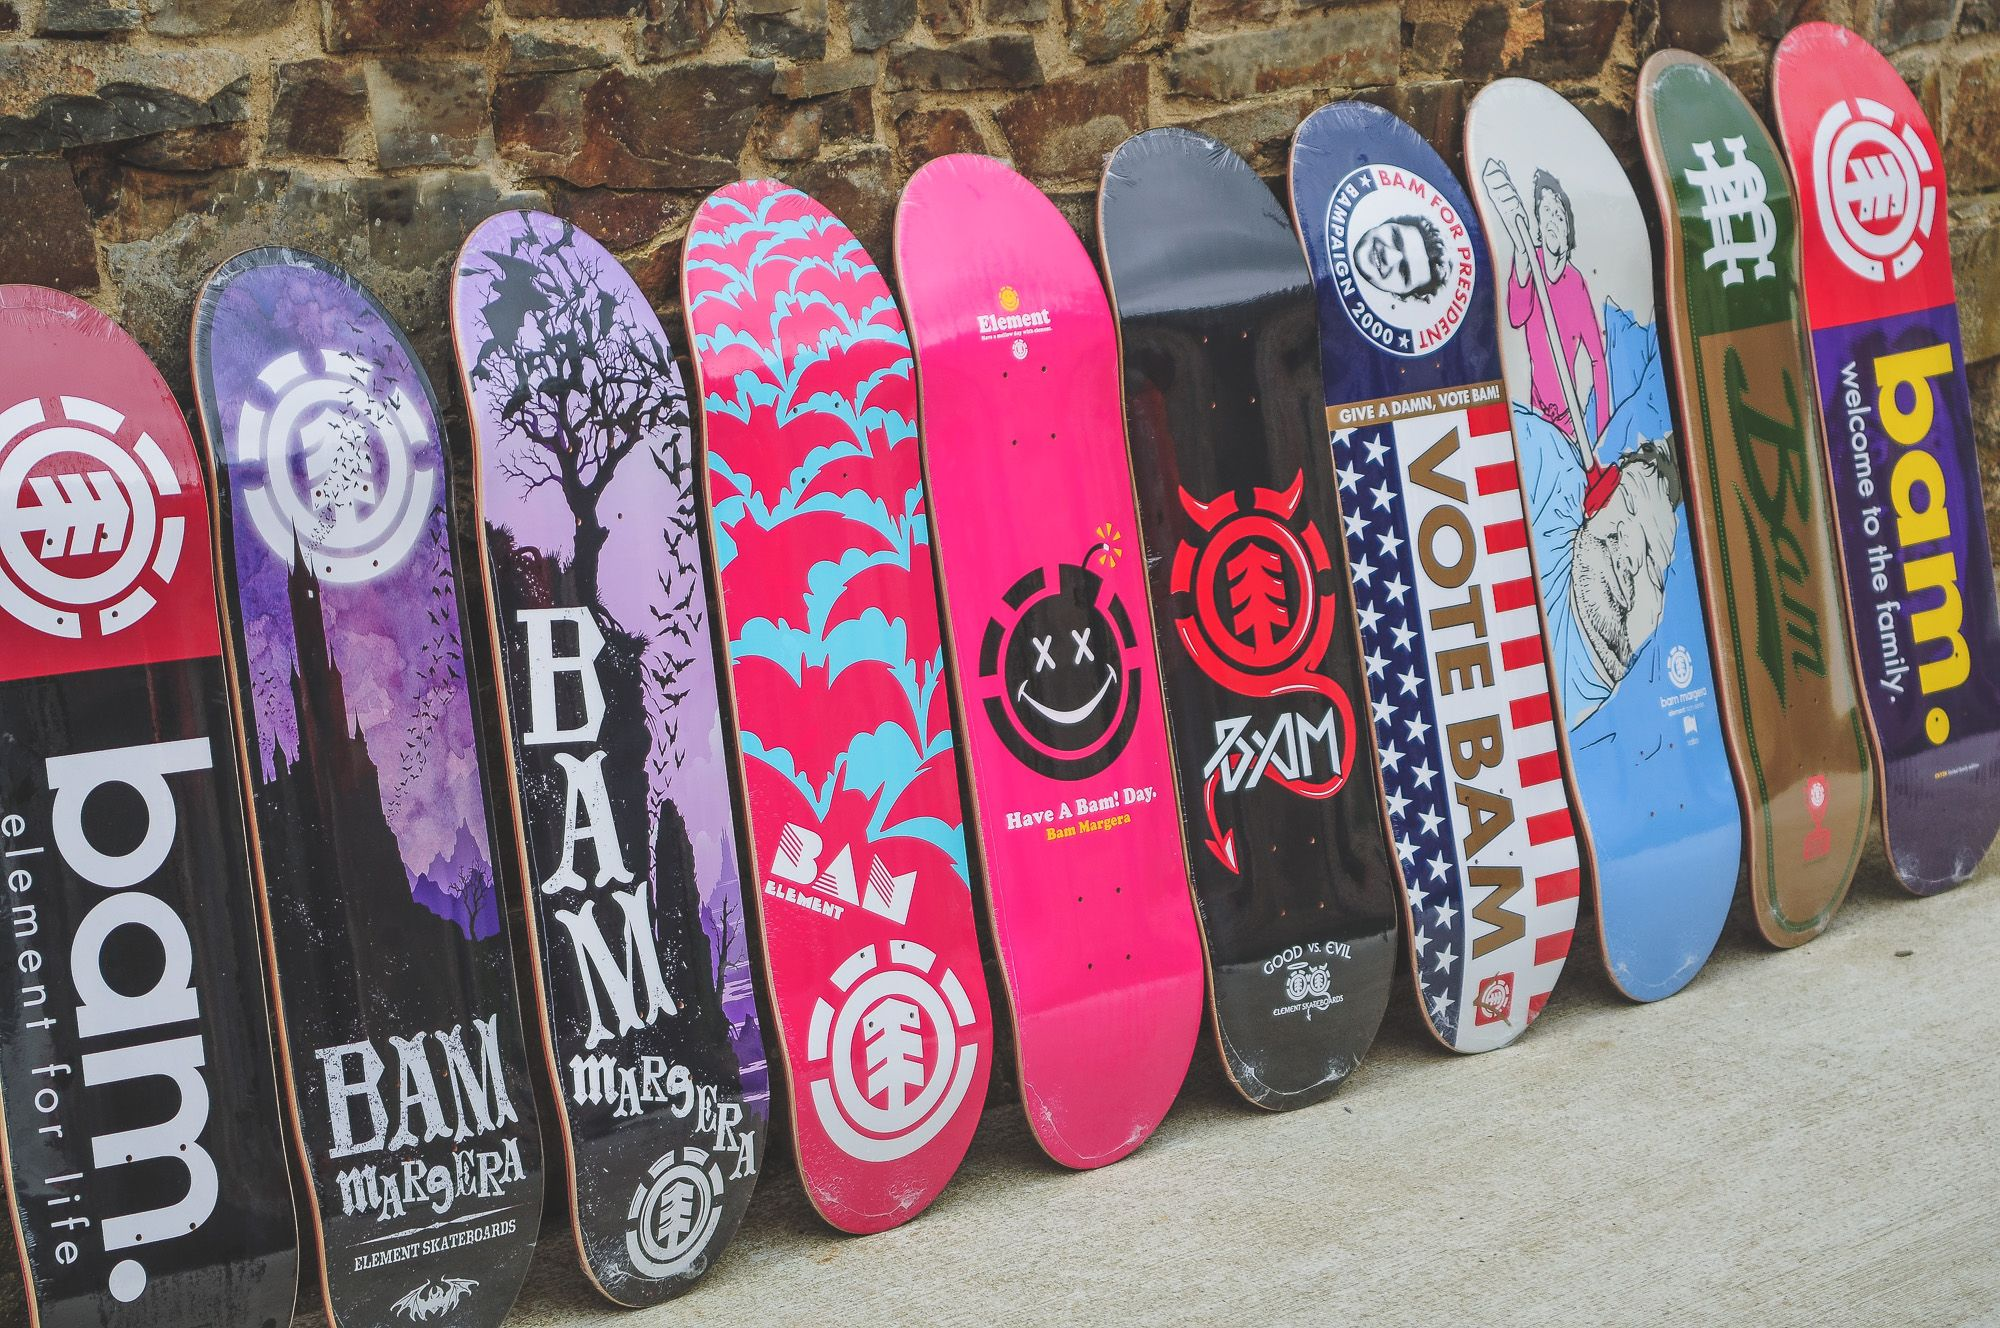 038c9119f9c7 BAM MARGERA DECKS - If you're a skateboarder from the late 90's / early  00's then chances are that you were a Bam Margera fan, or at very least you  would ...